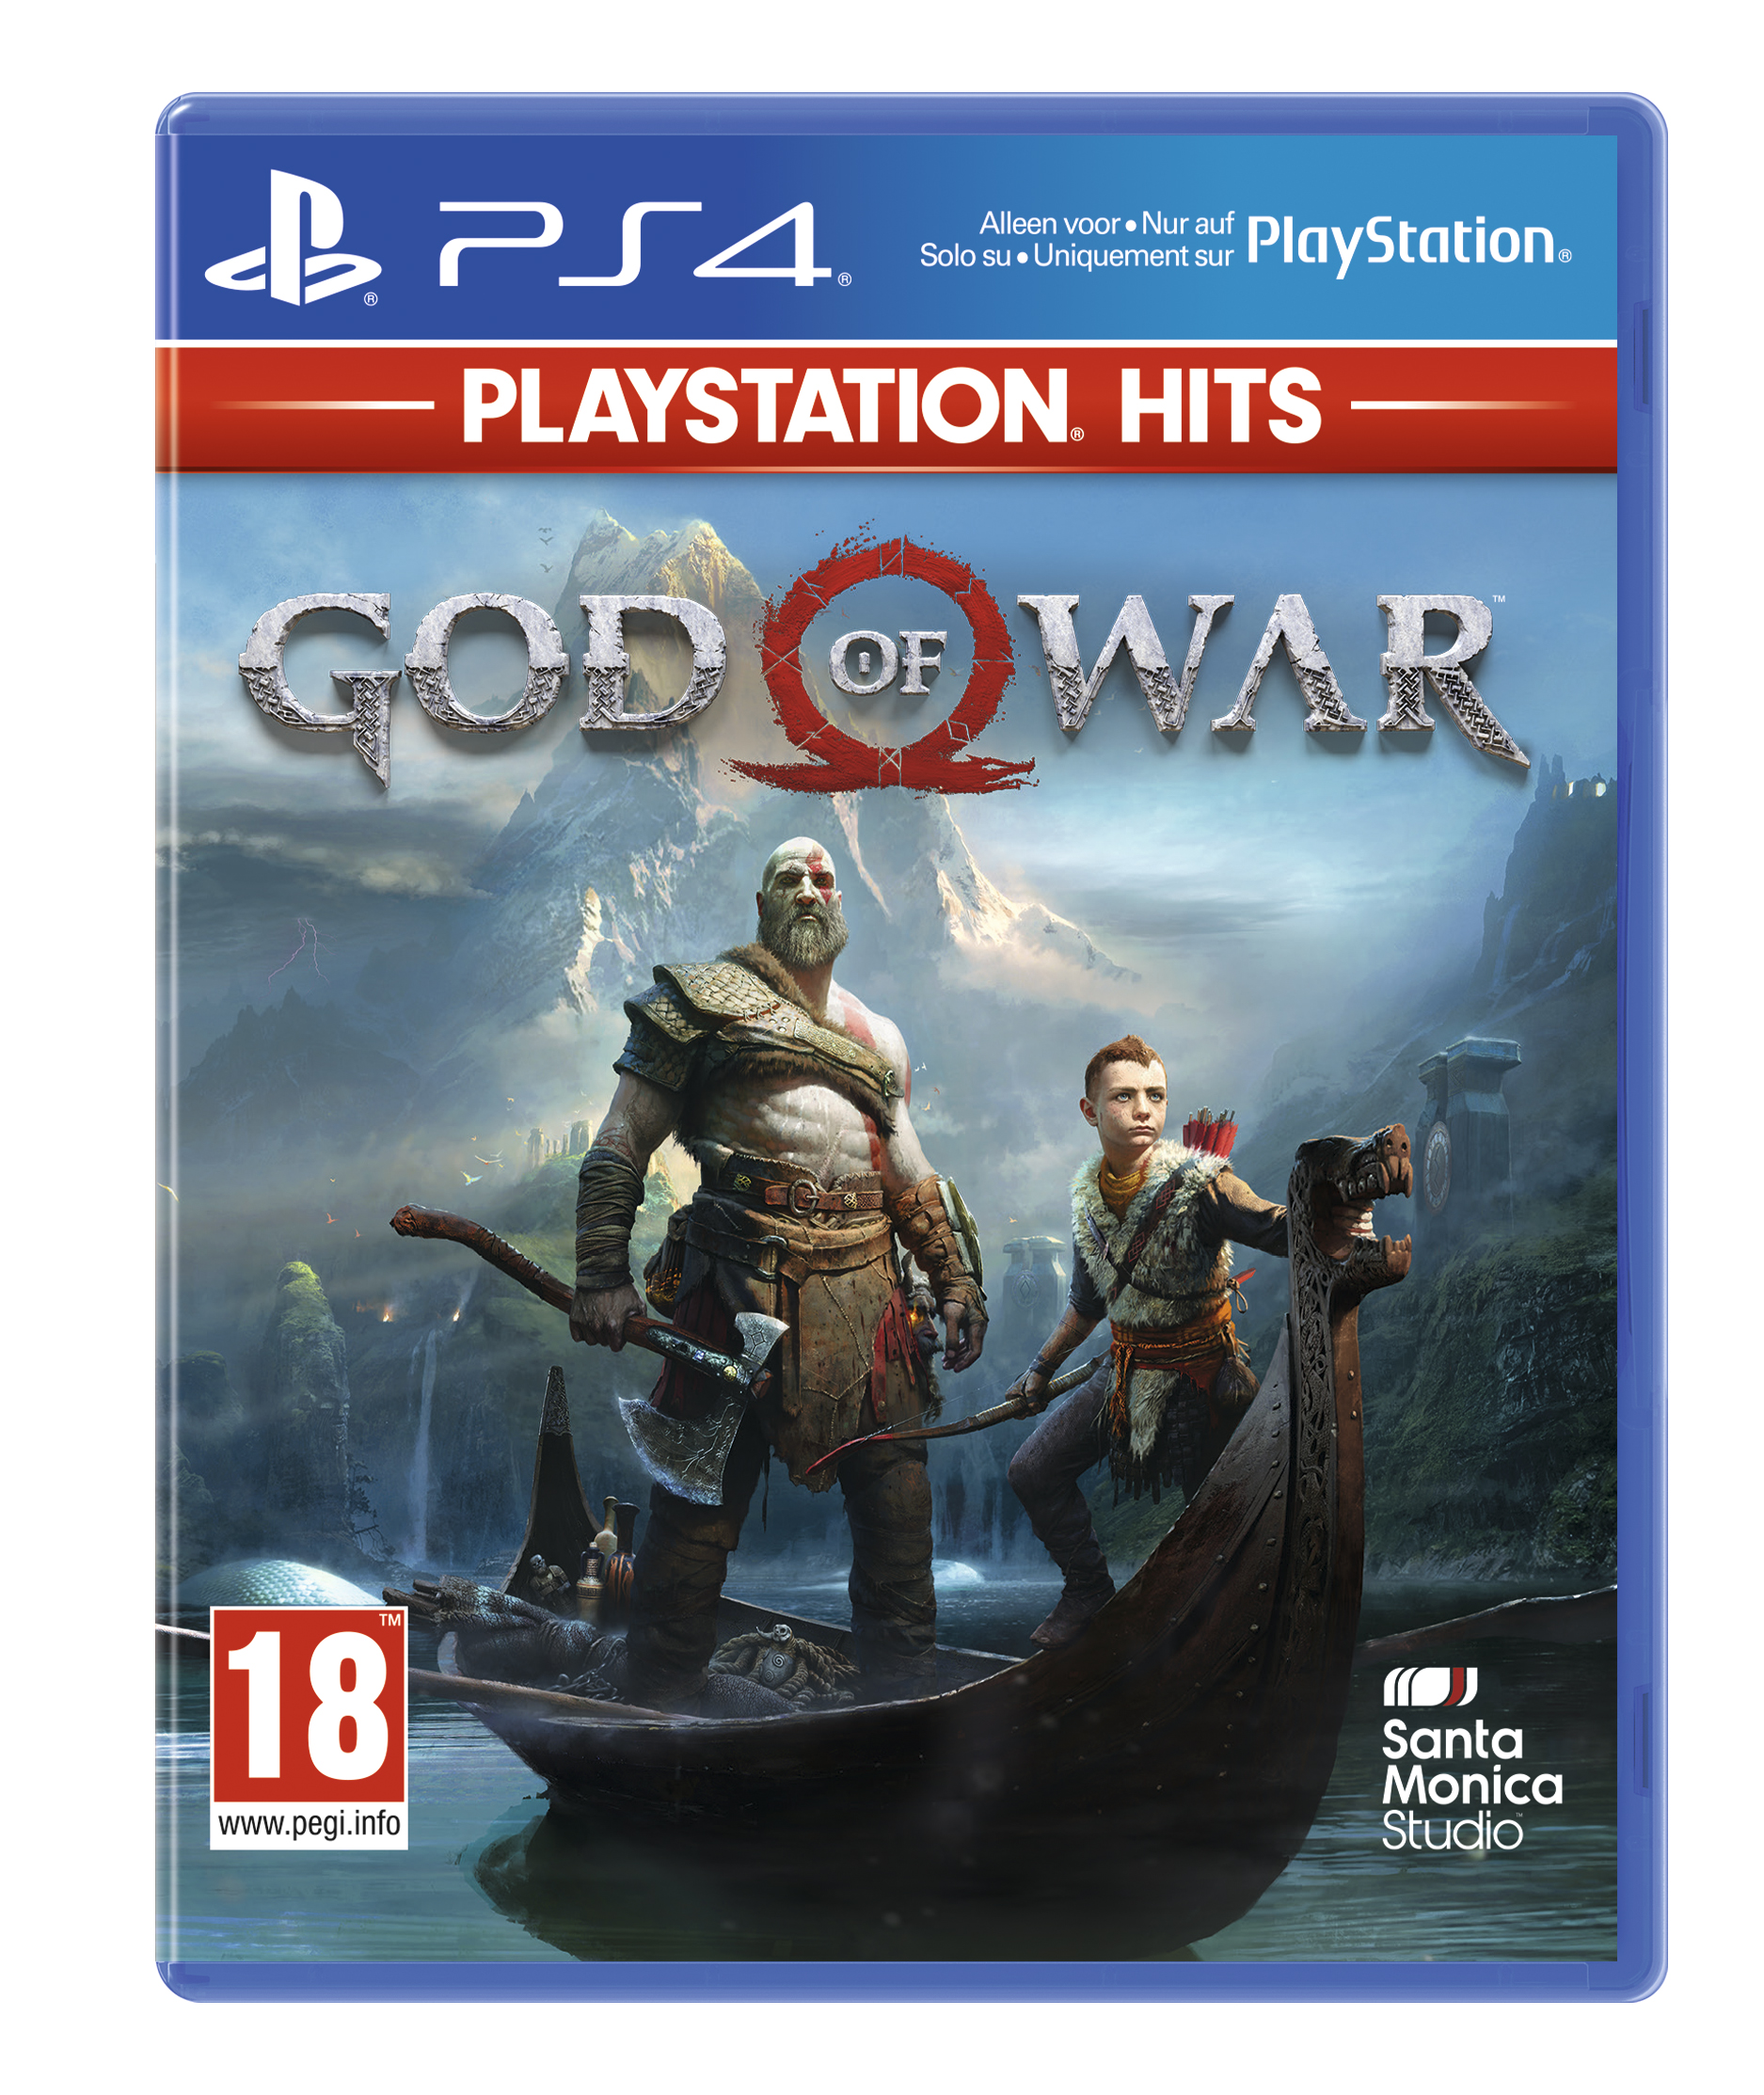 GOD OF WAR HITS (PS4 ONLY)